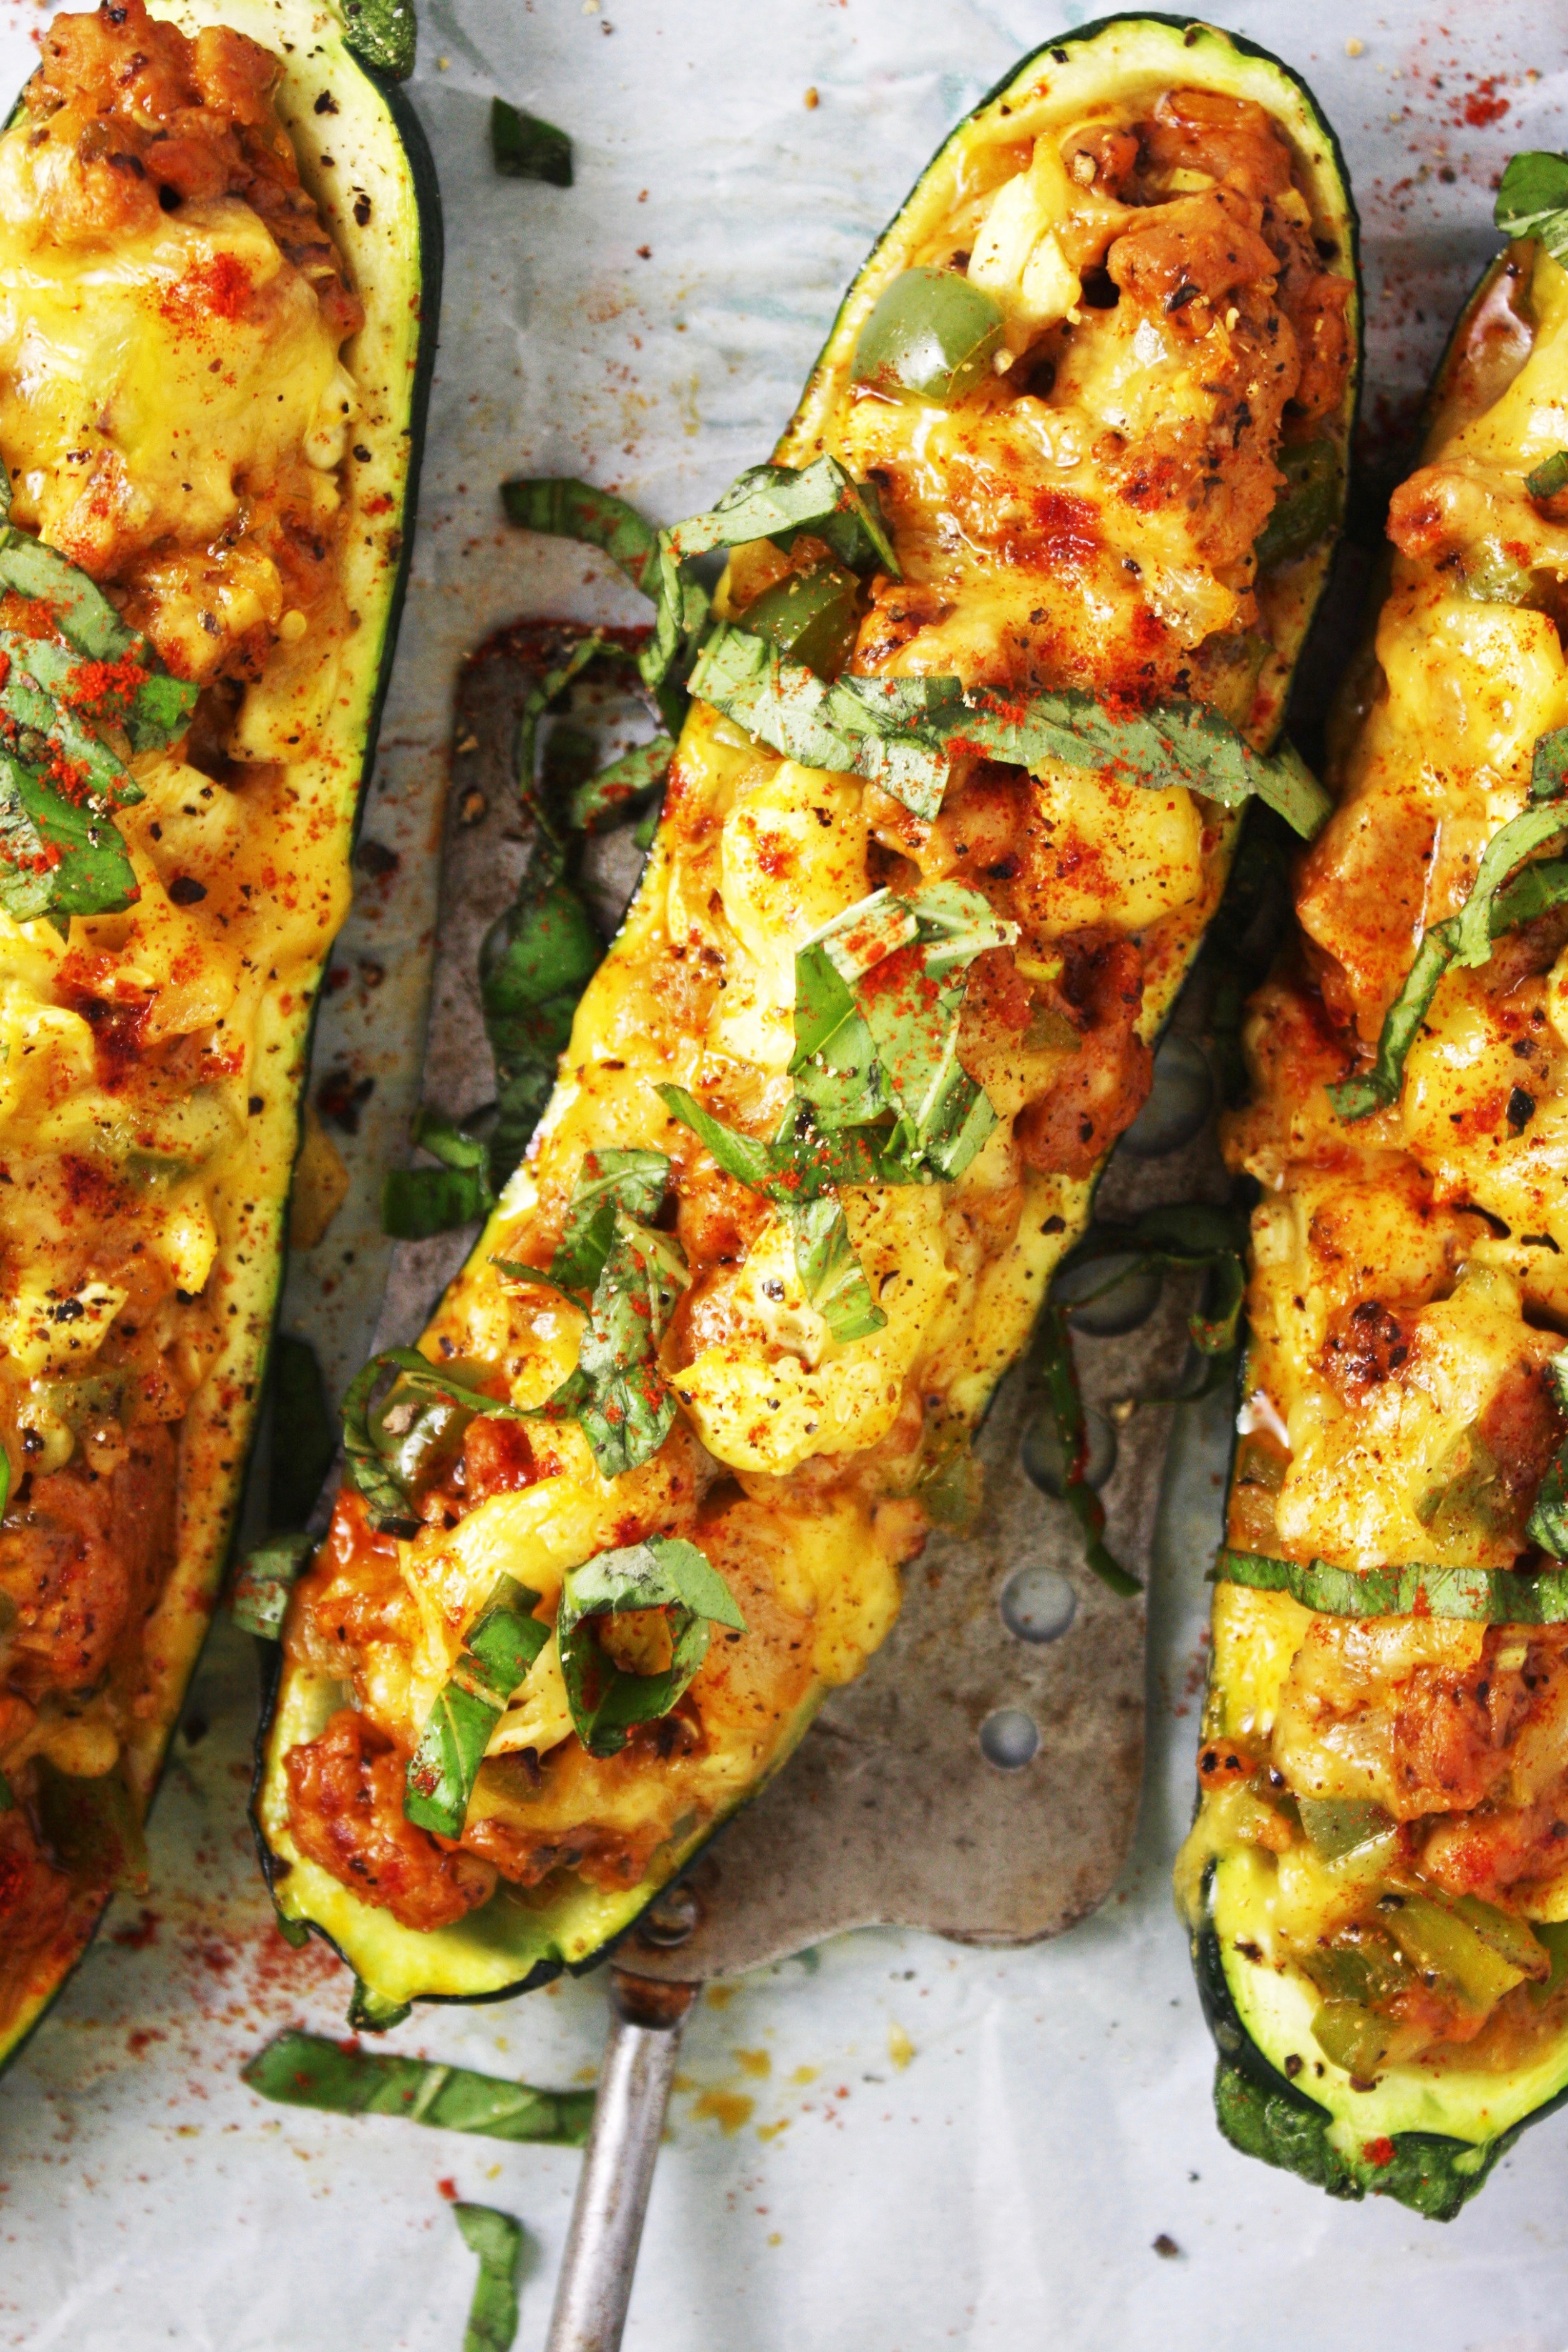 Cheddar And Sausage Stuffed Zucchini Boats